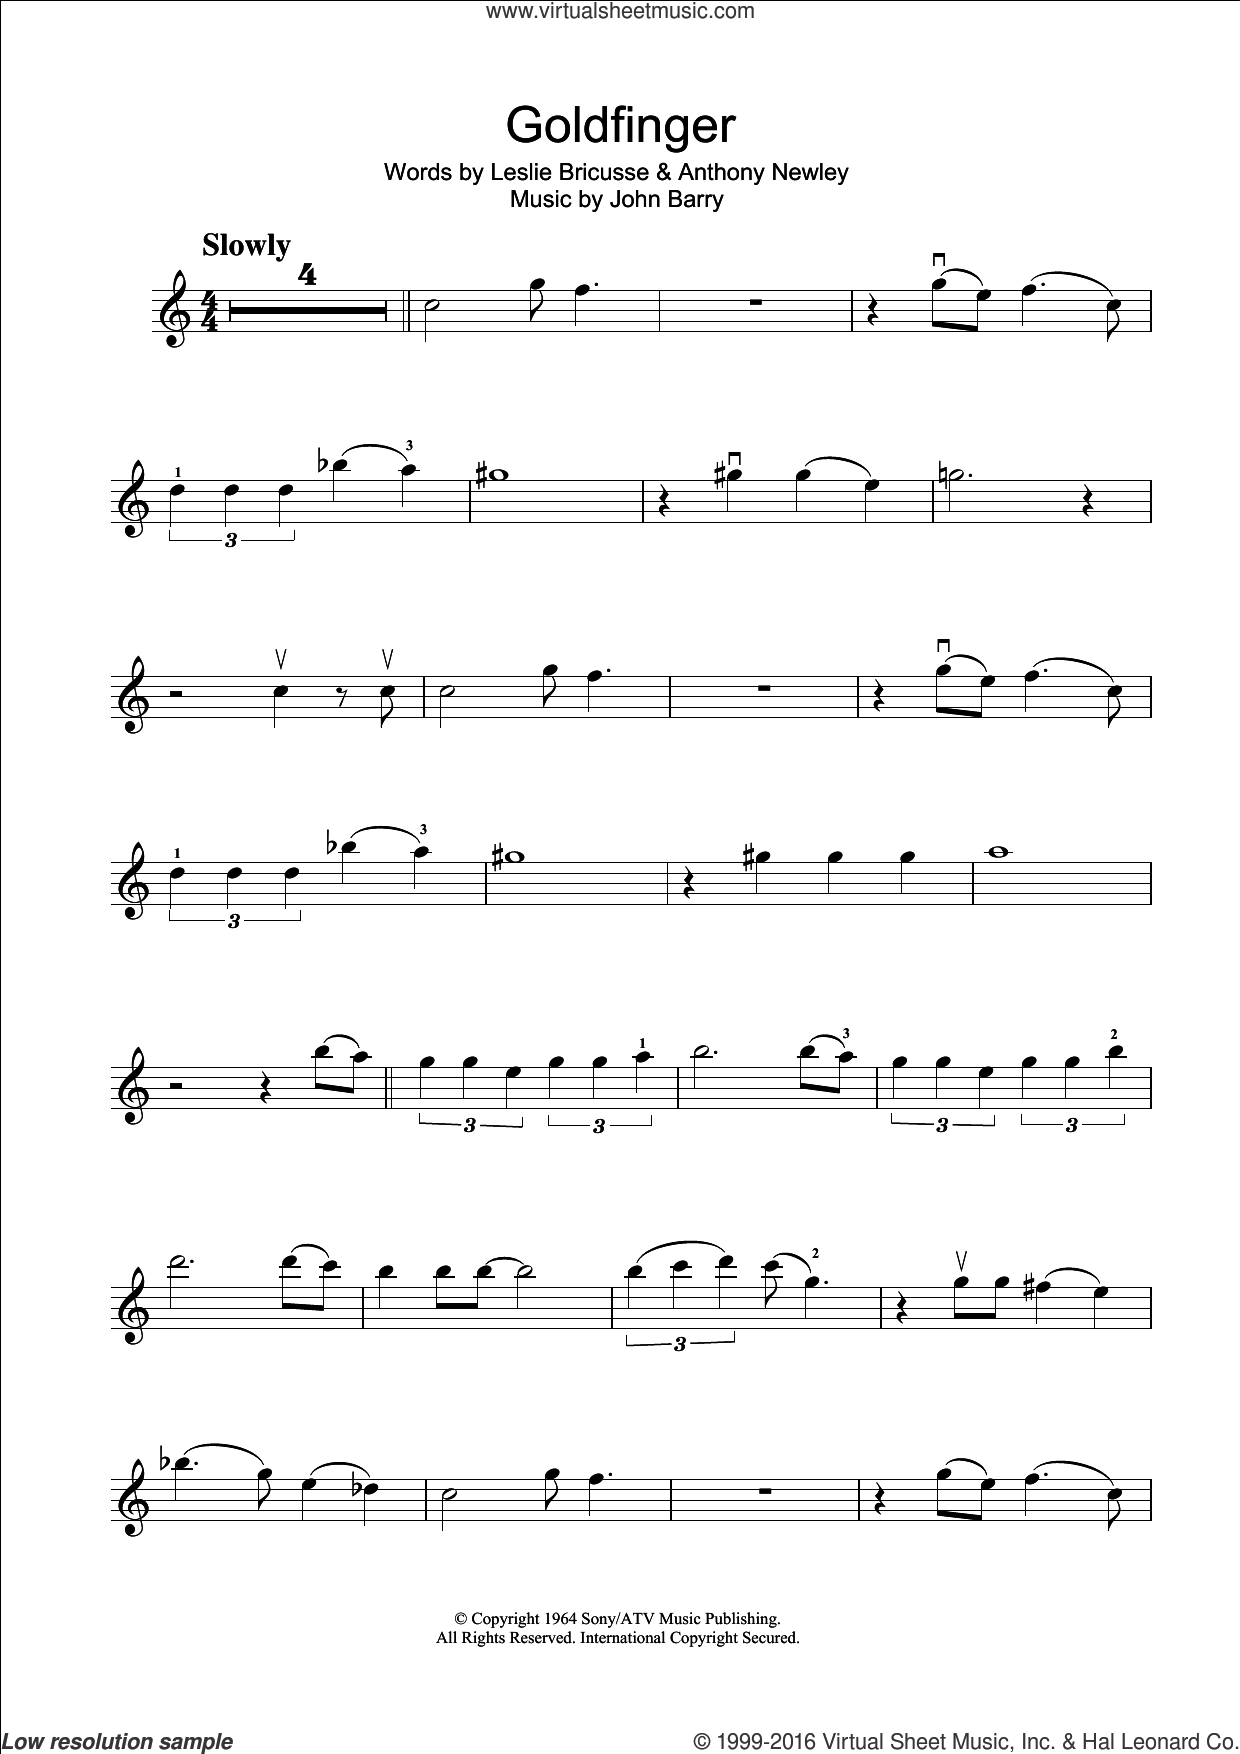 Goldfinger sheet music for violin solo by Leslie Bricusse